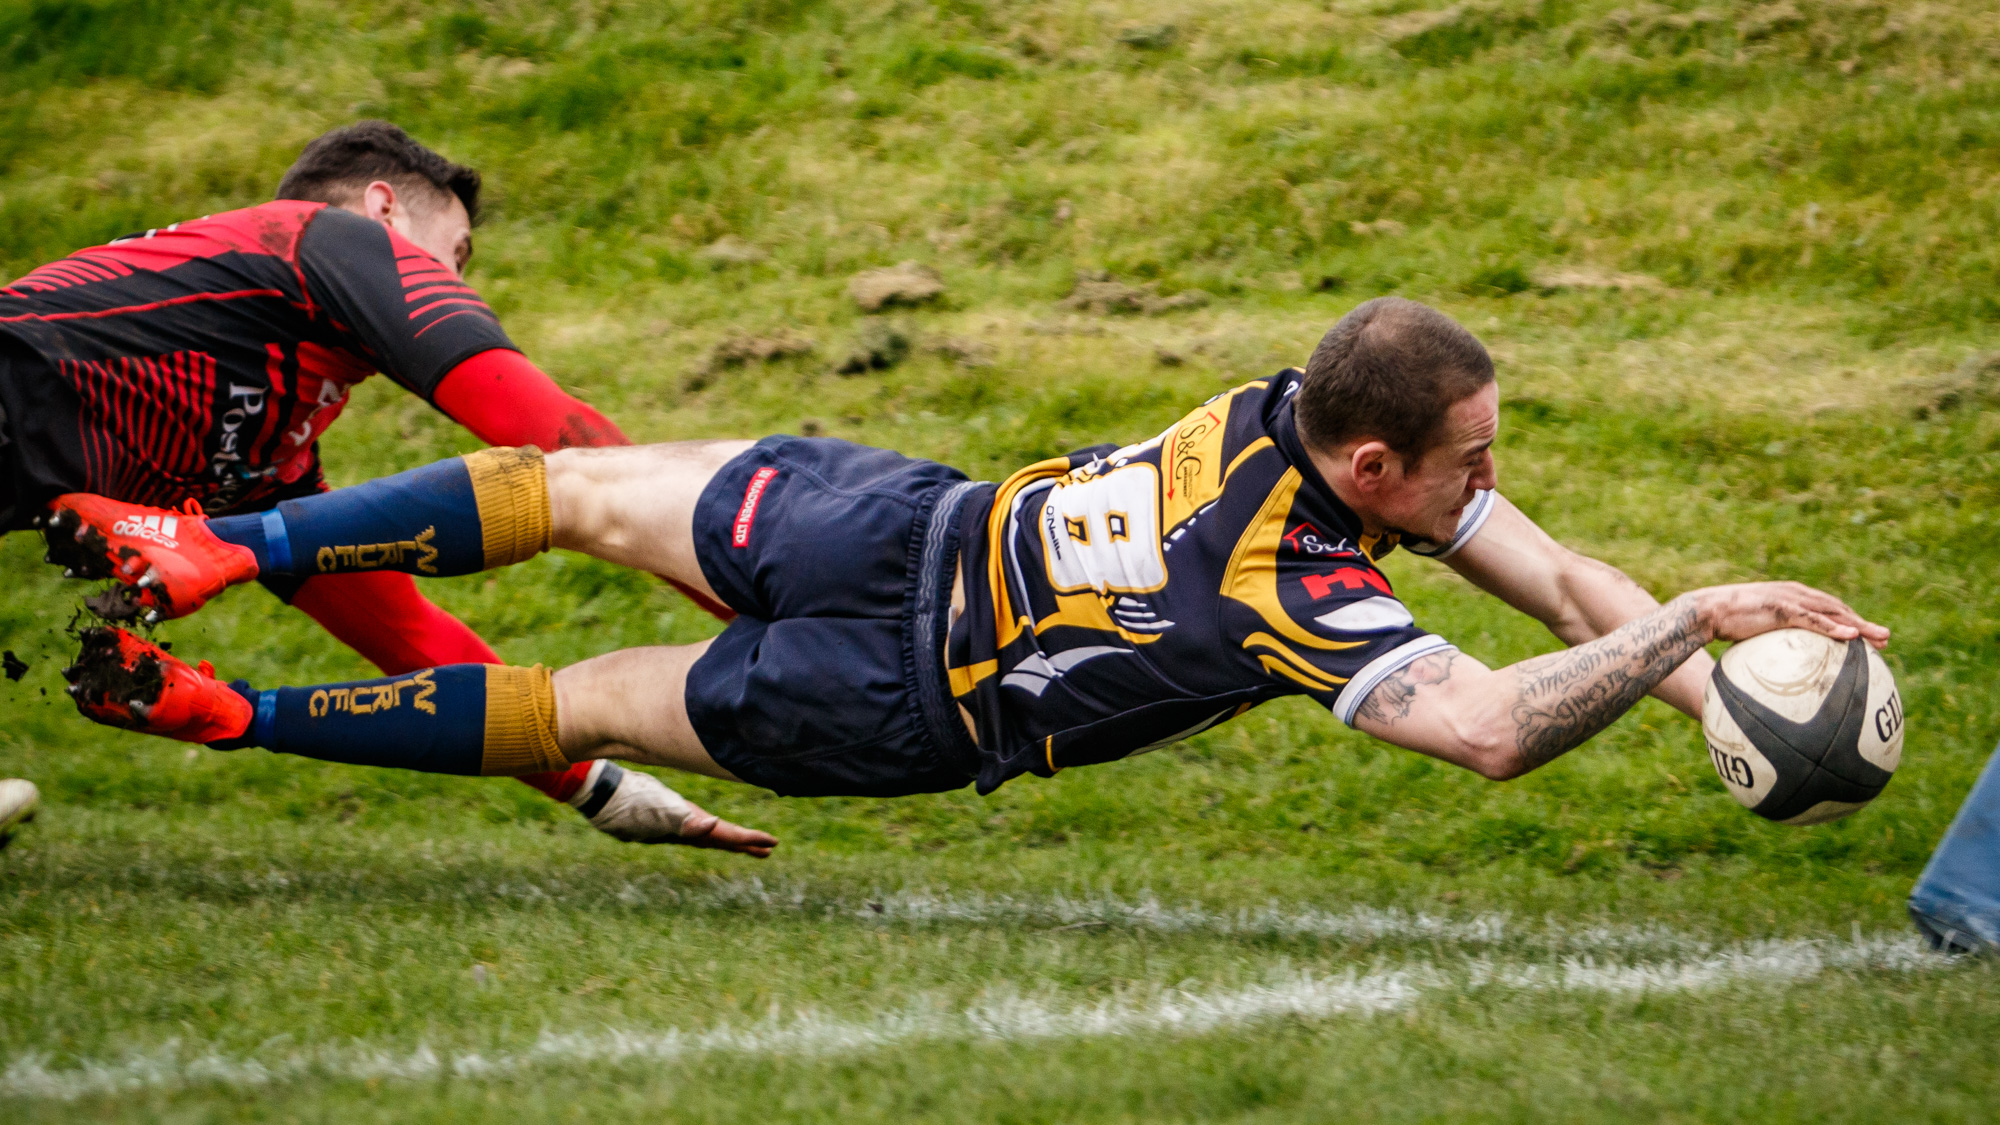 My only diving try - from West Leeds